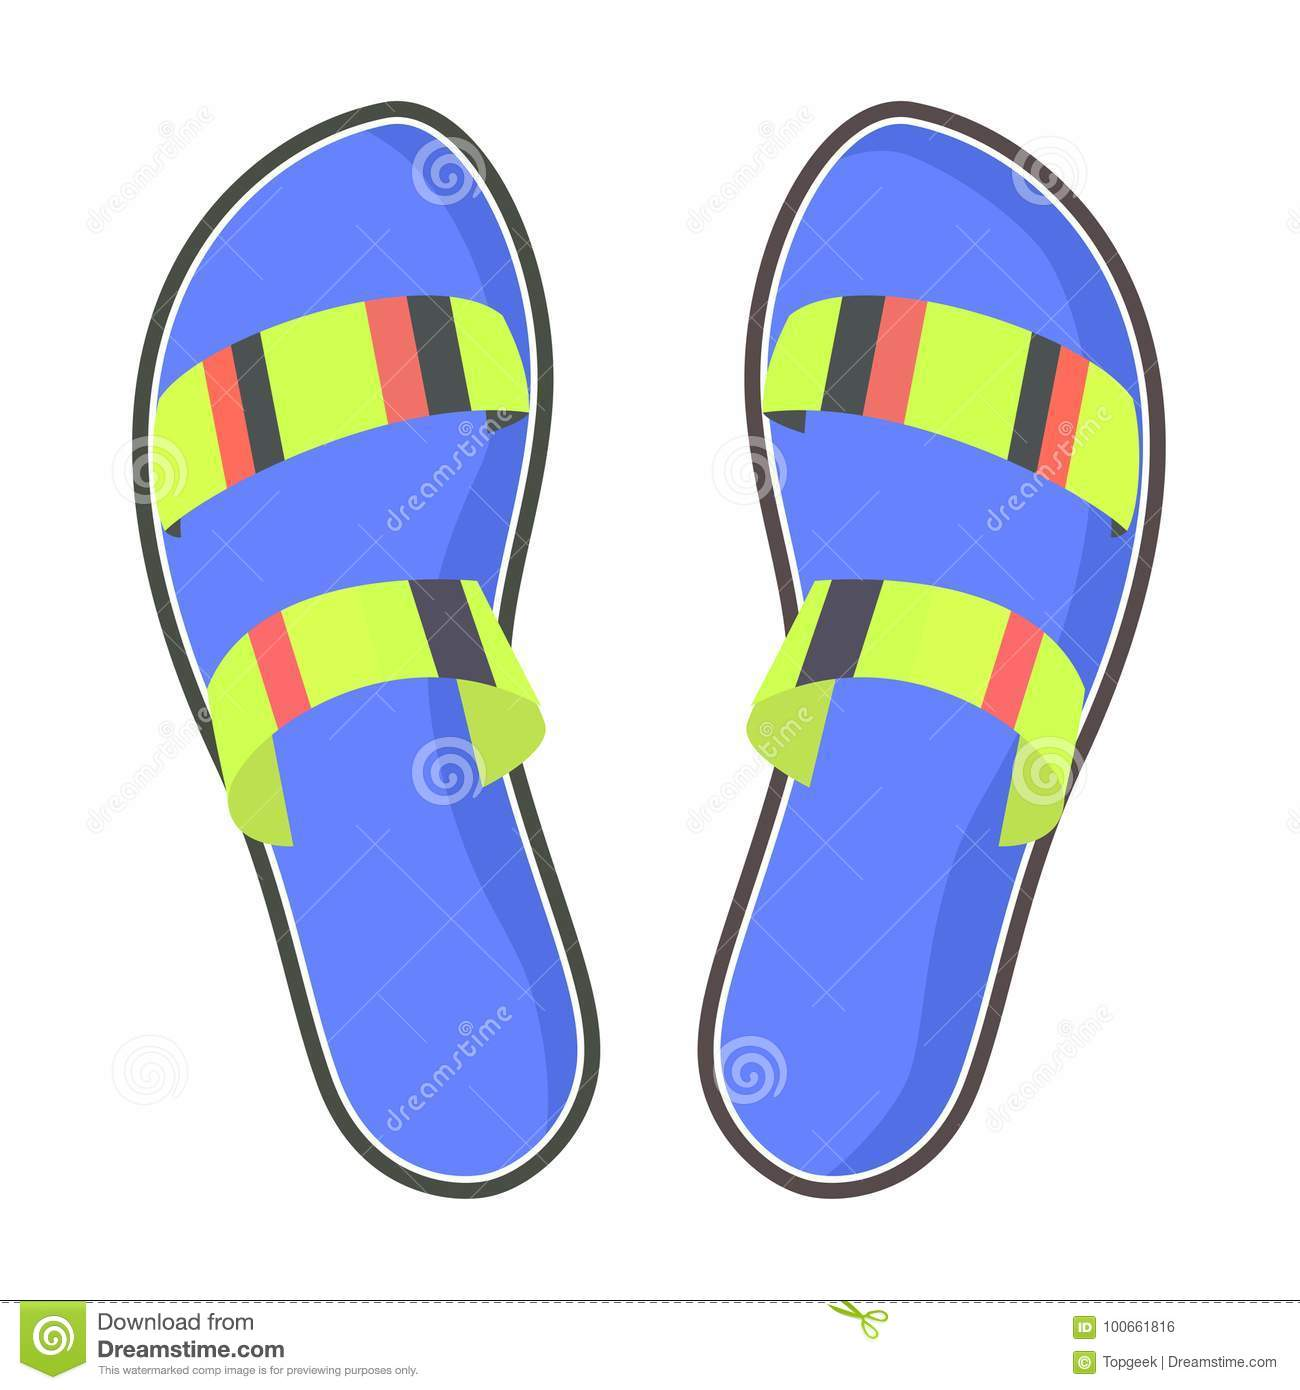 280e97d3a Striped summer flip-flops with blue footbed isolated on white background.  Women comfortable footwear for fresh look and beach walks.